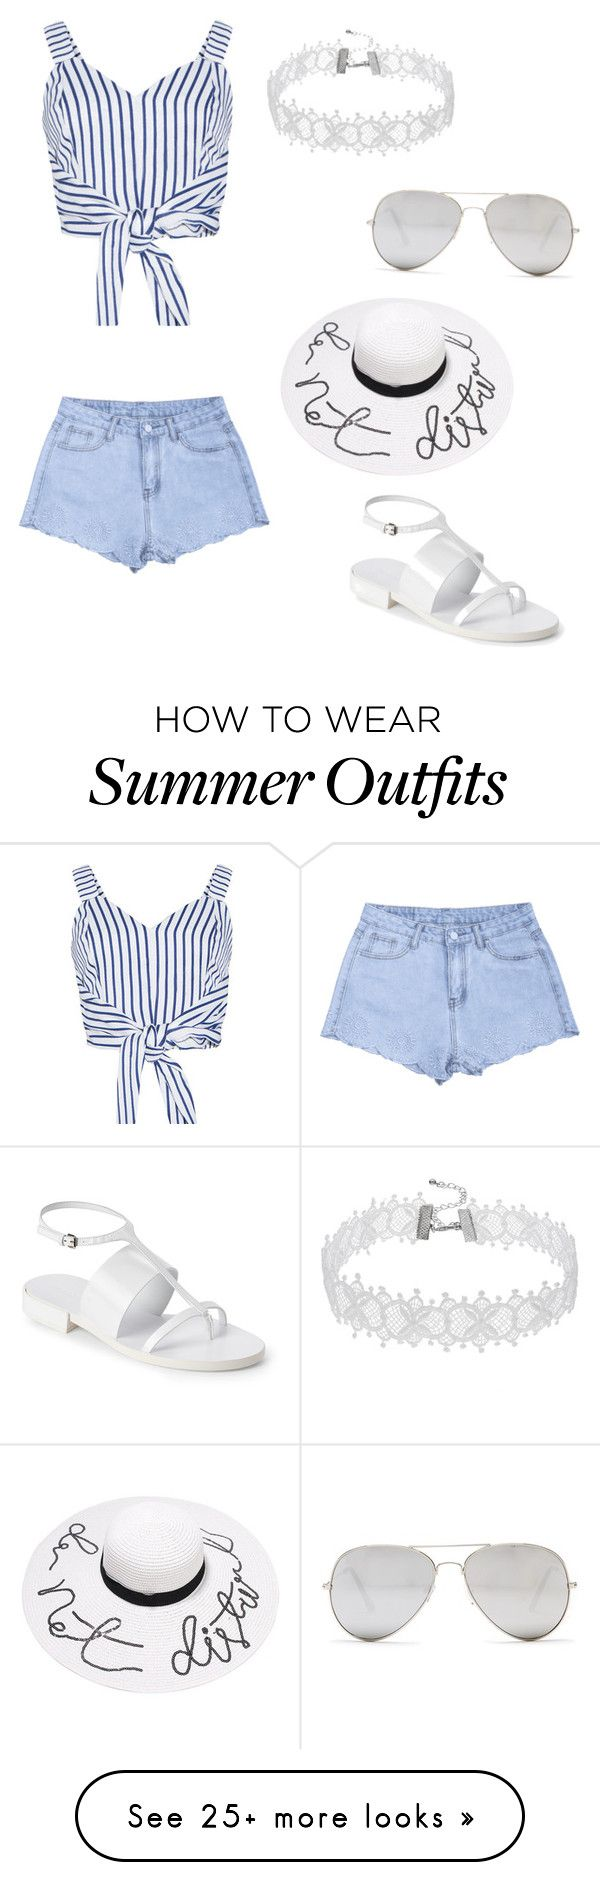 Essentials you will need for your spring break outfits! These ideas are perfect for your next trip or vacation during your college break!